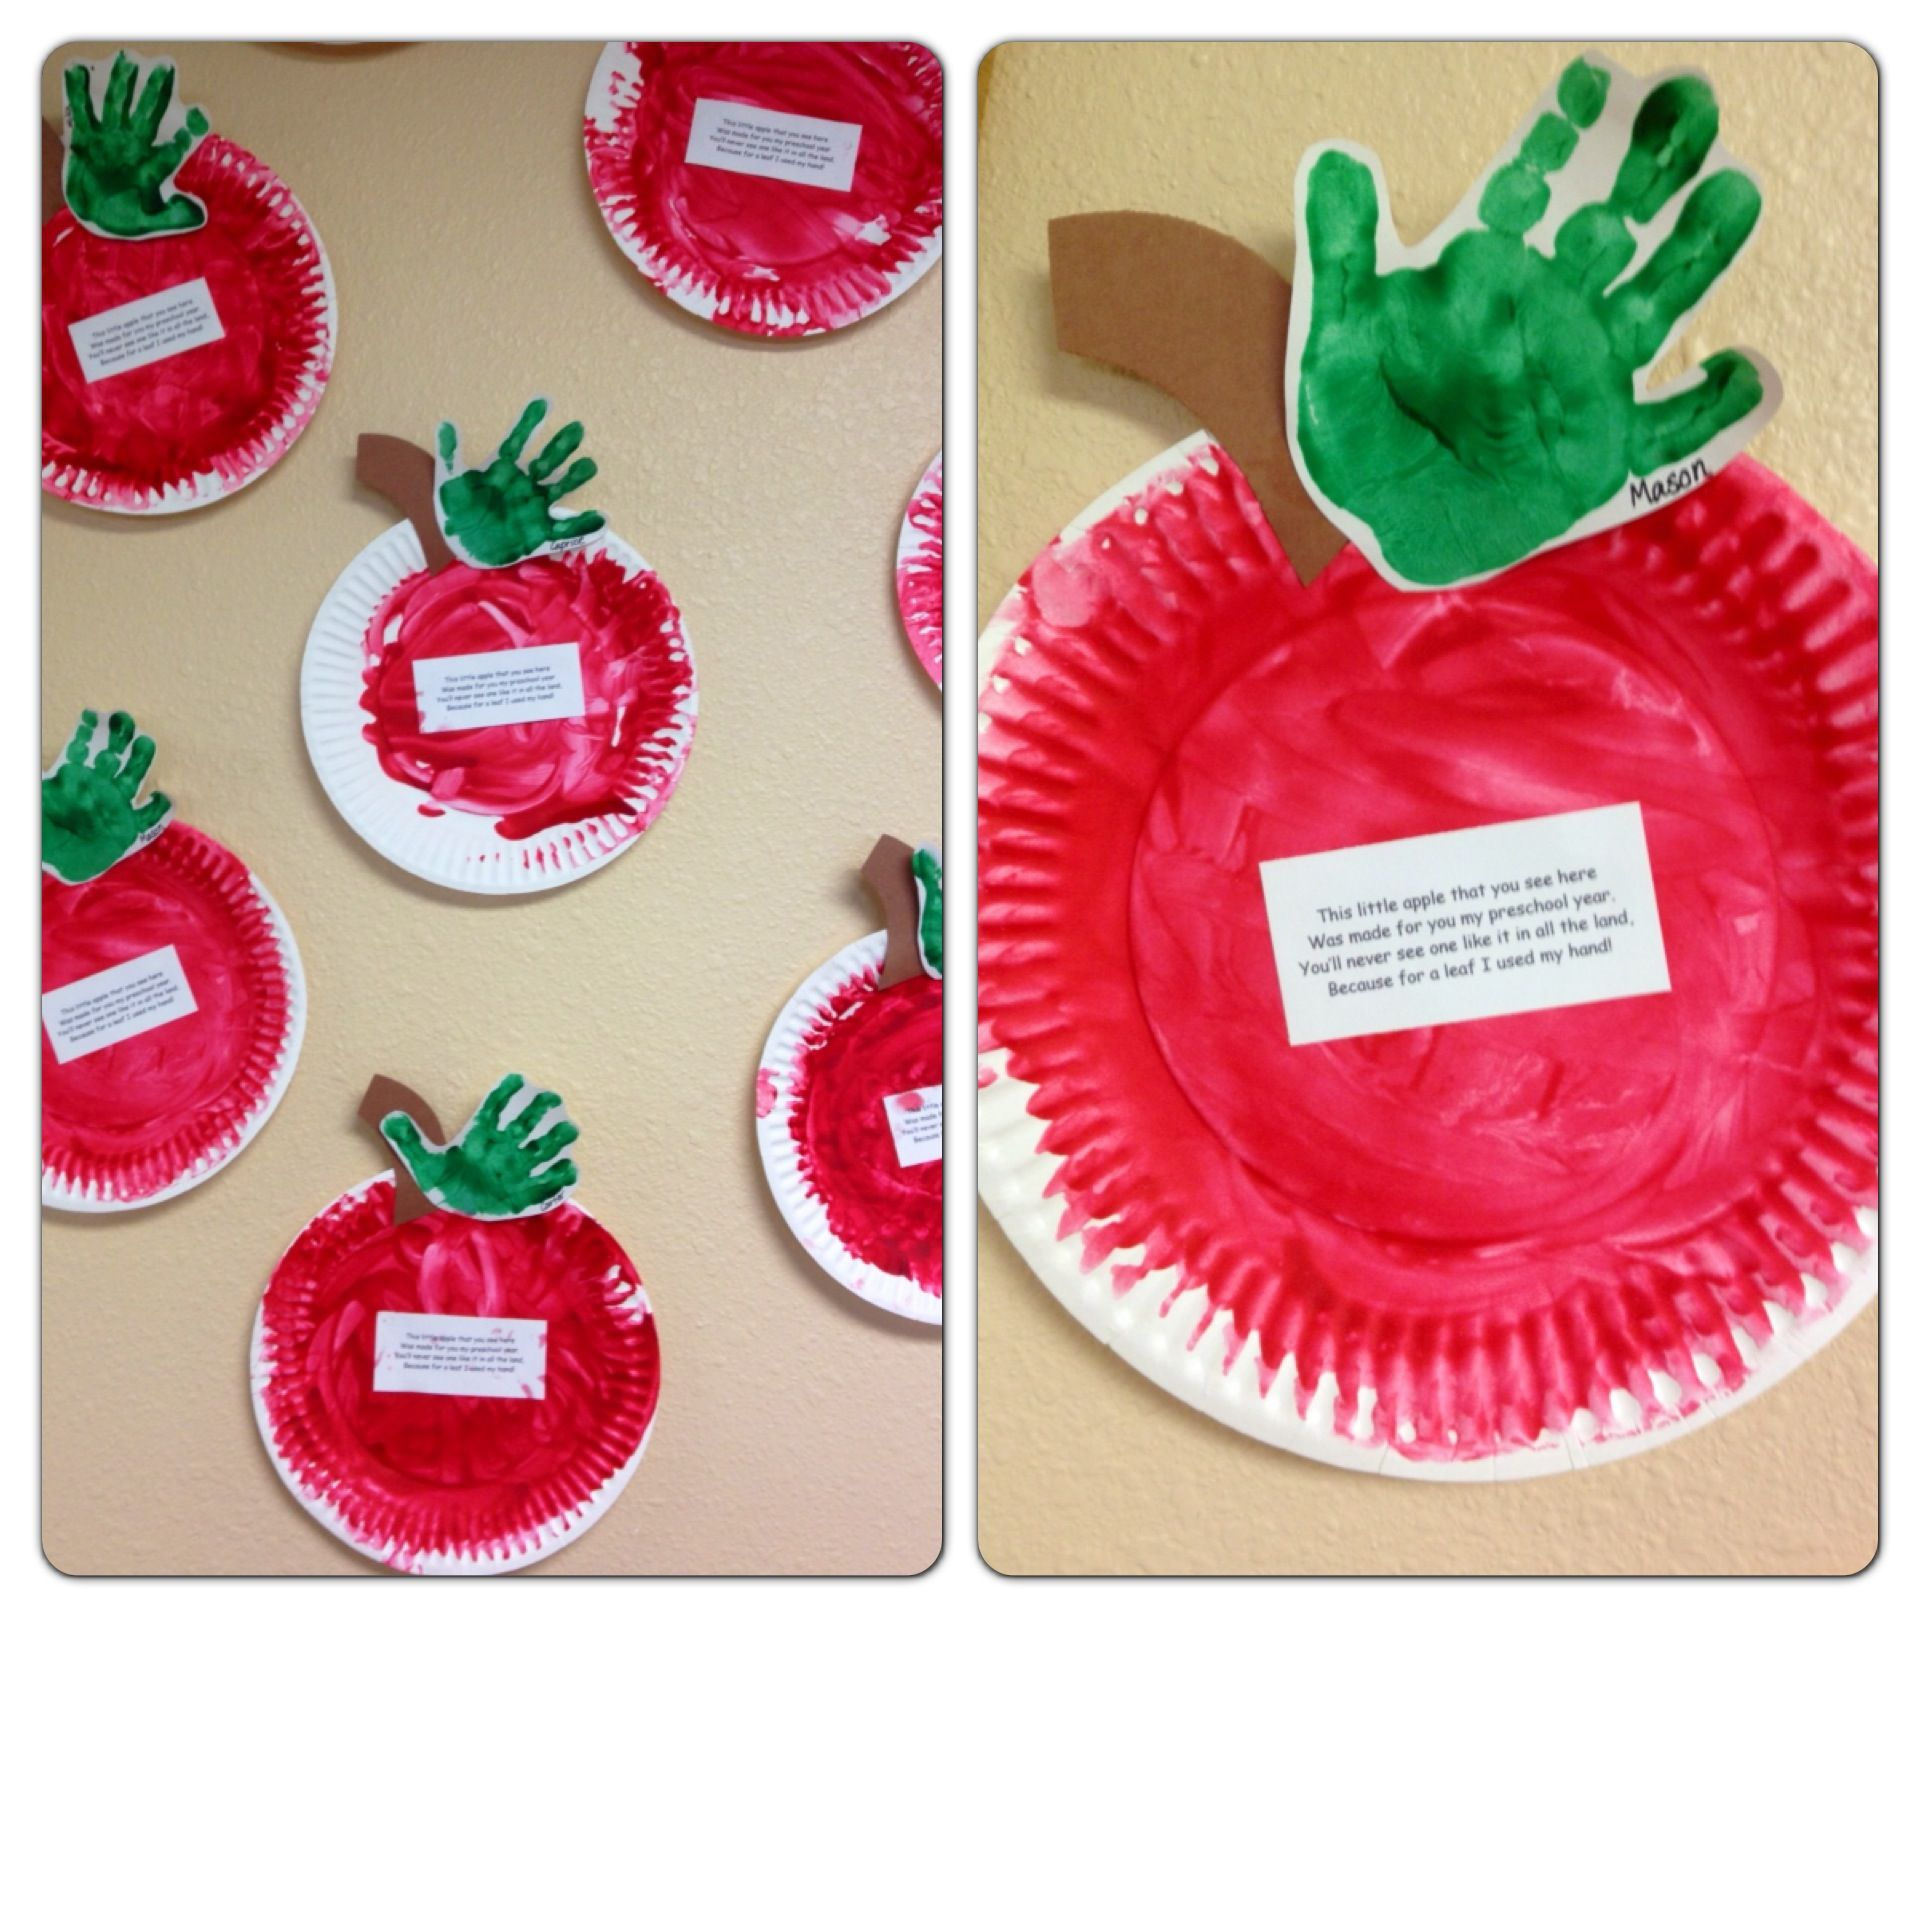 Paper Plate Apples Fingerpainted With Handprint Leafs By My Two Year Old Class